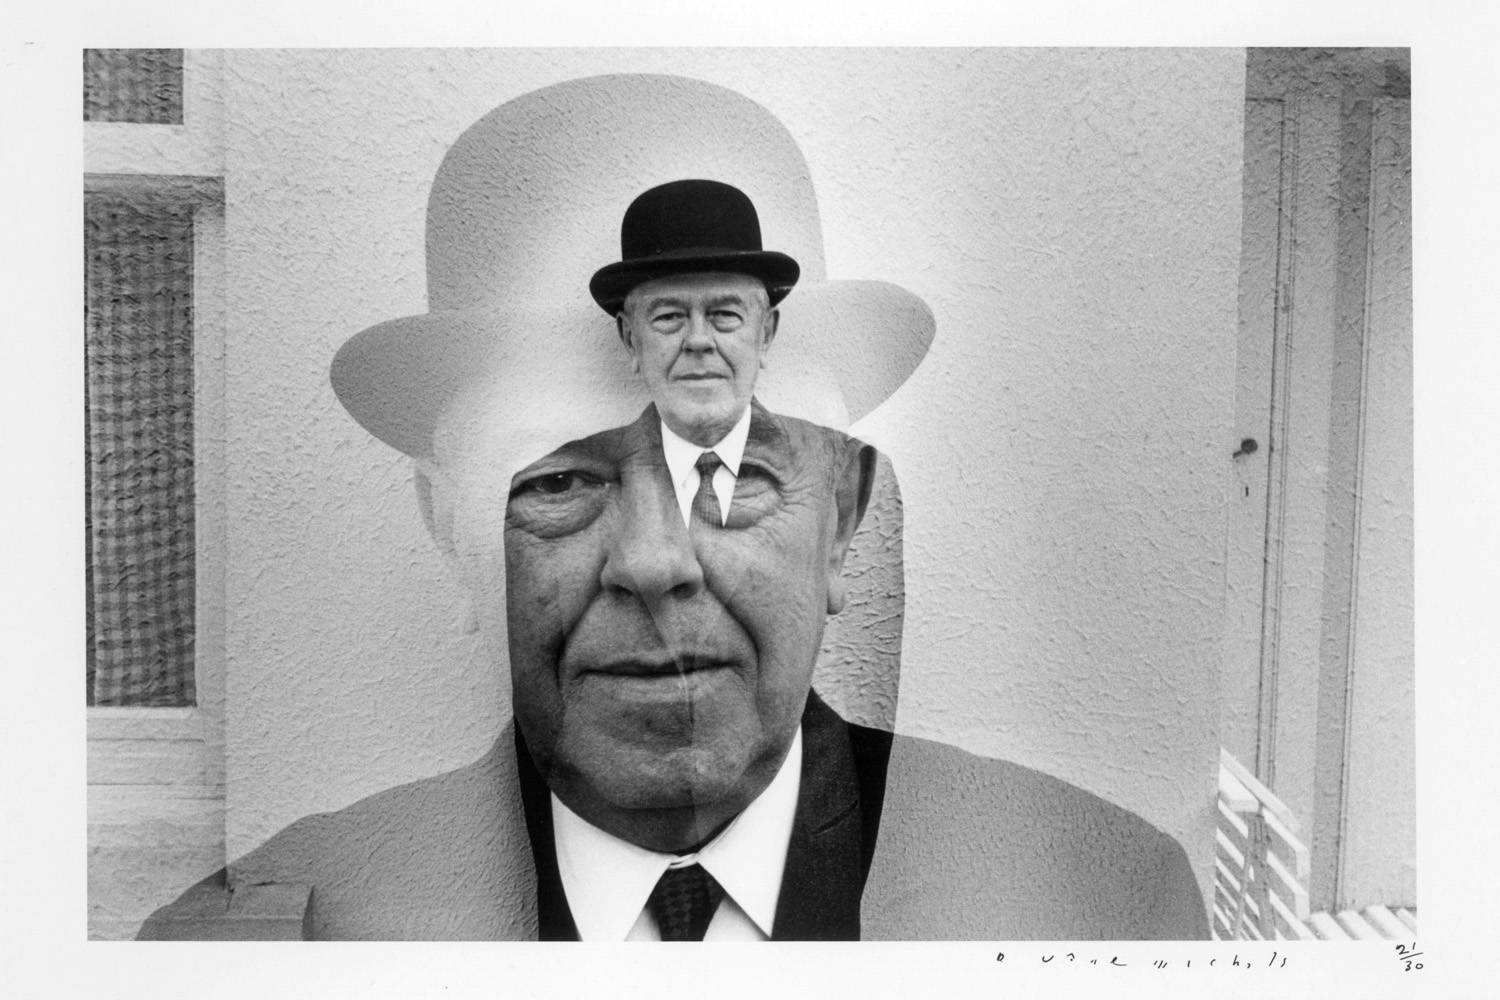 Rene Magritte in Bowler Hat (Multiple Exposure), 1965